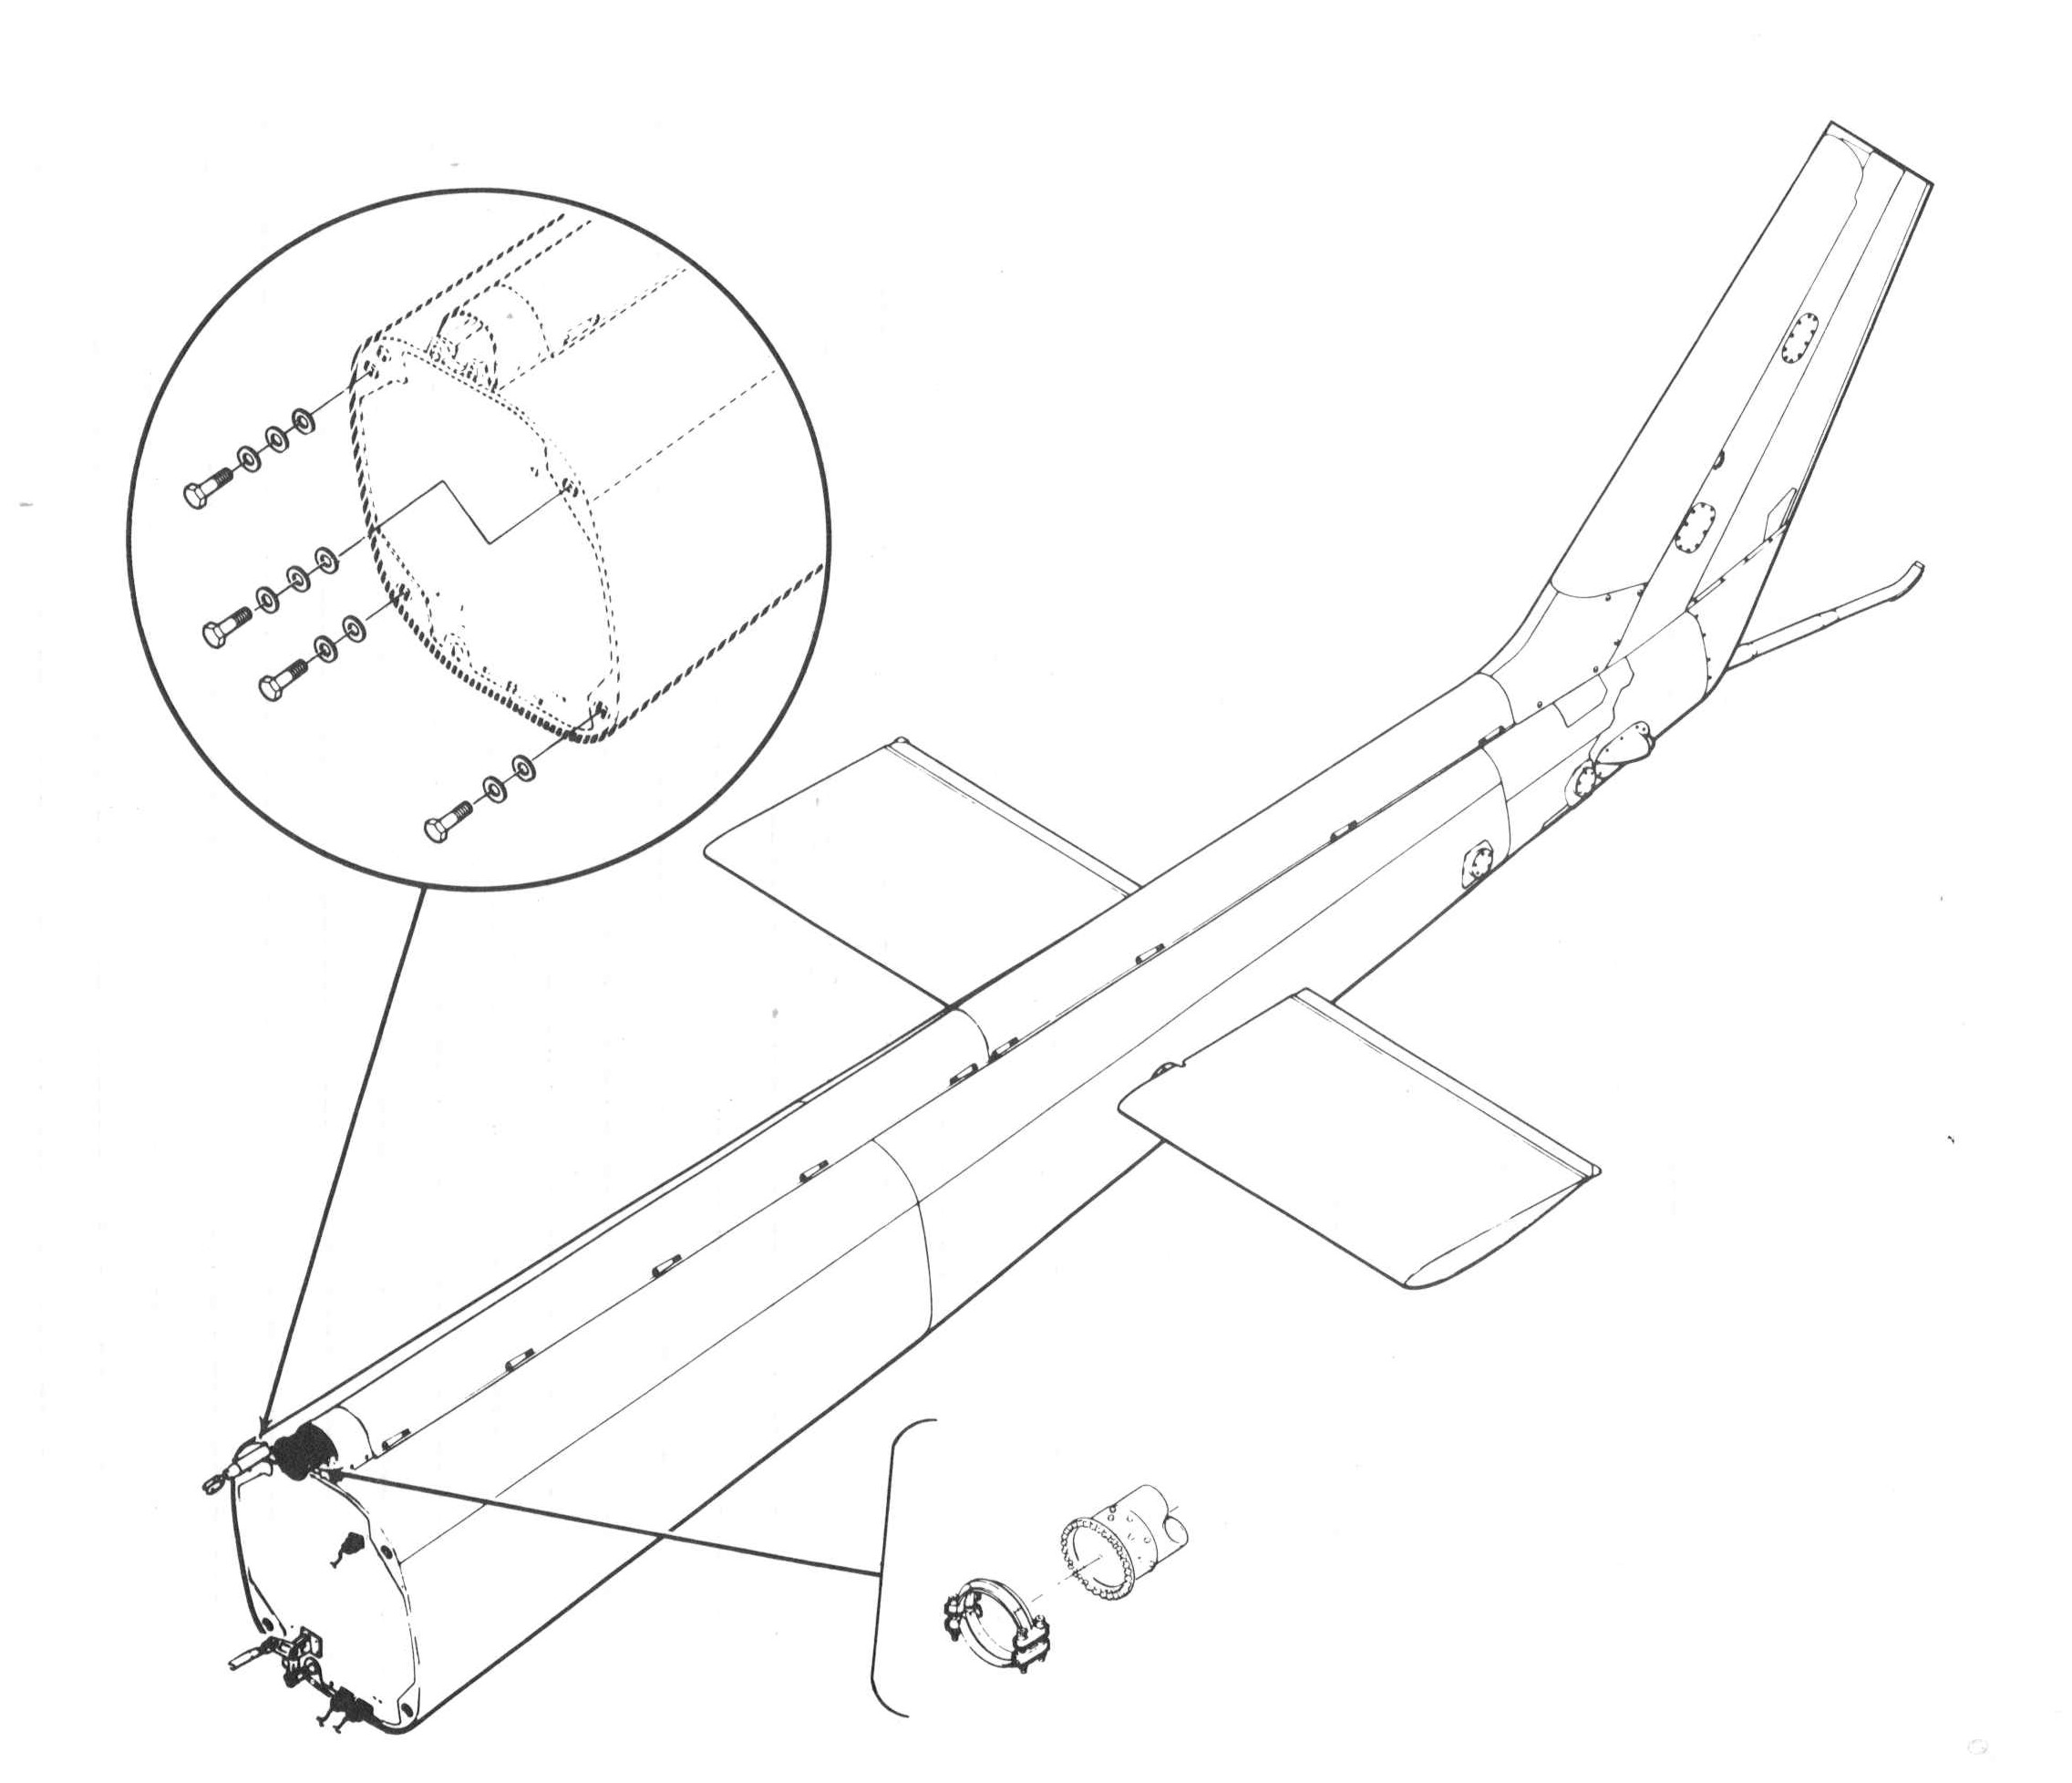 Helicopter Boom Diagram